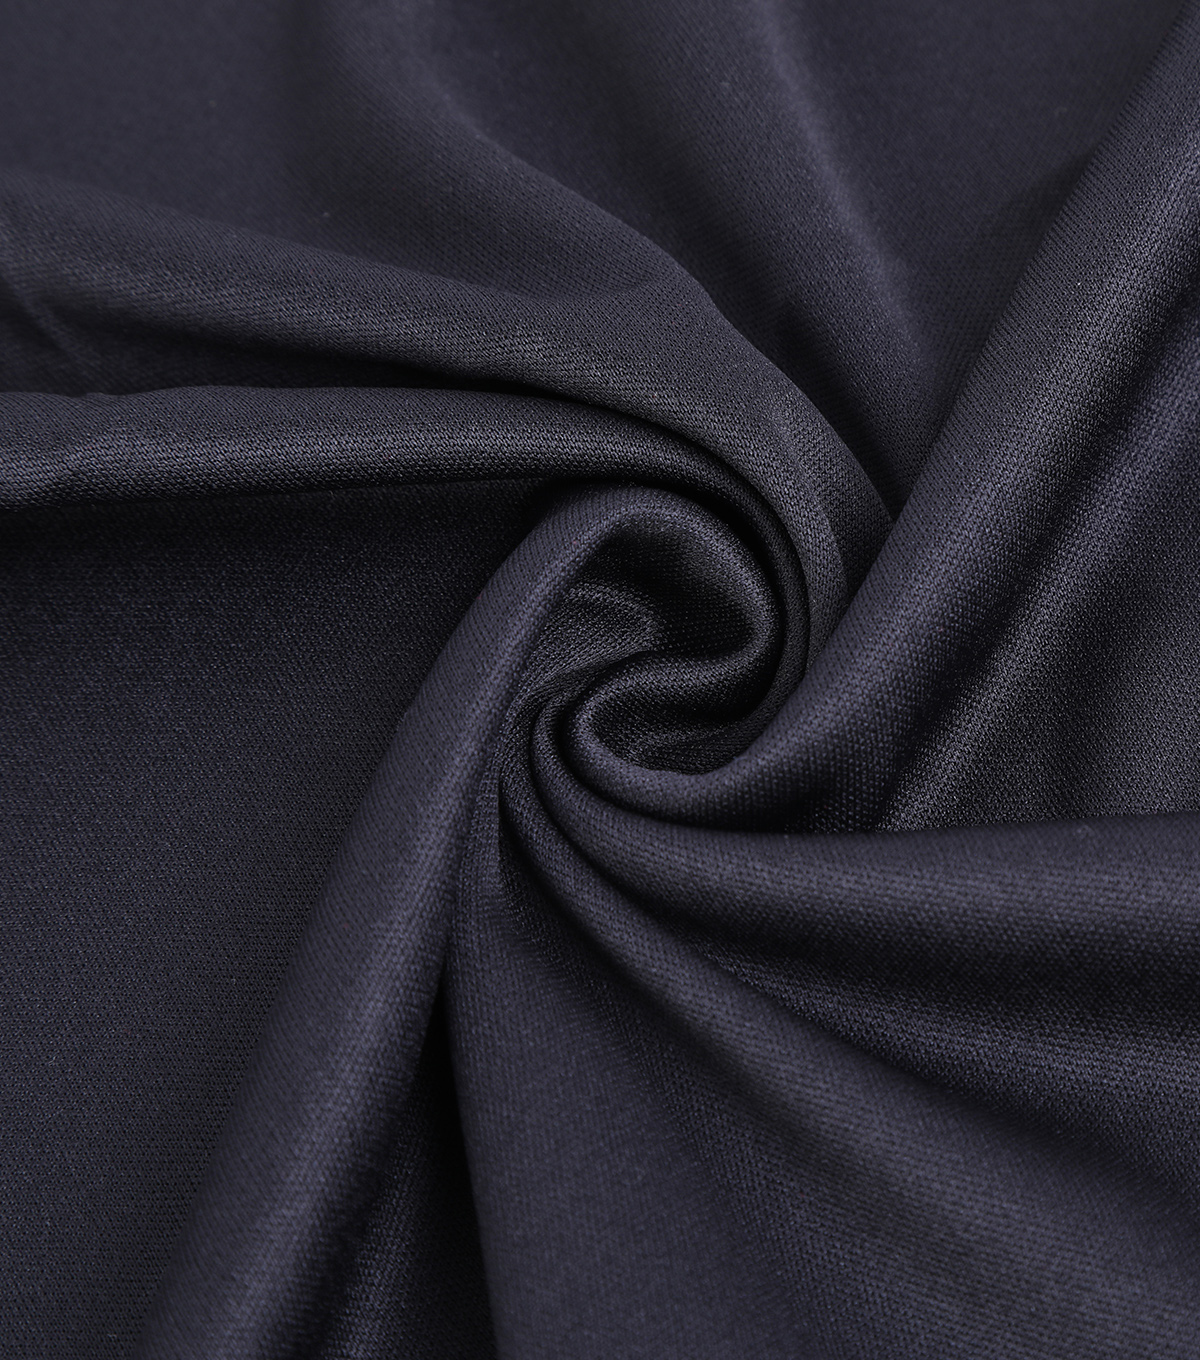 The Witching Hour Halloween Costume Knit Fabric 58\u0022-Black